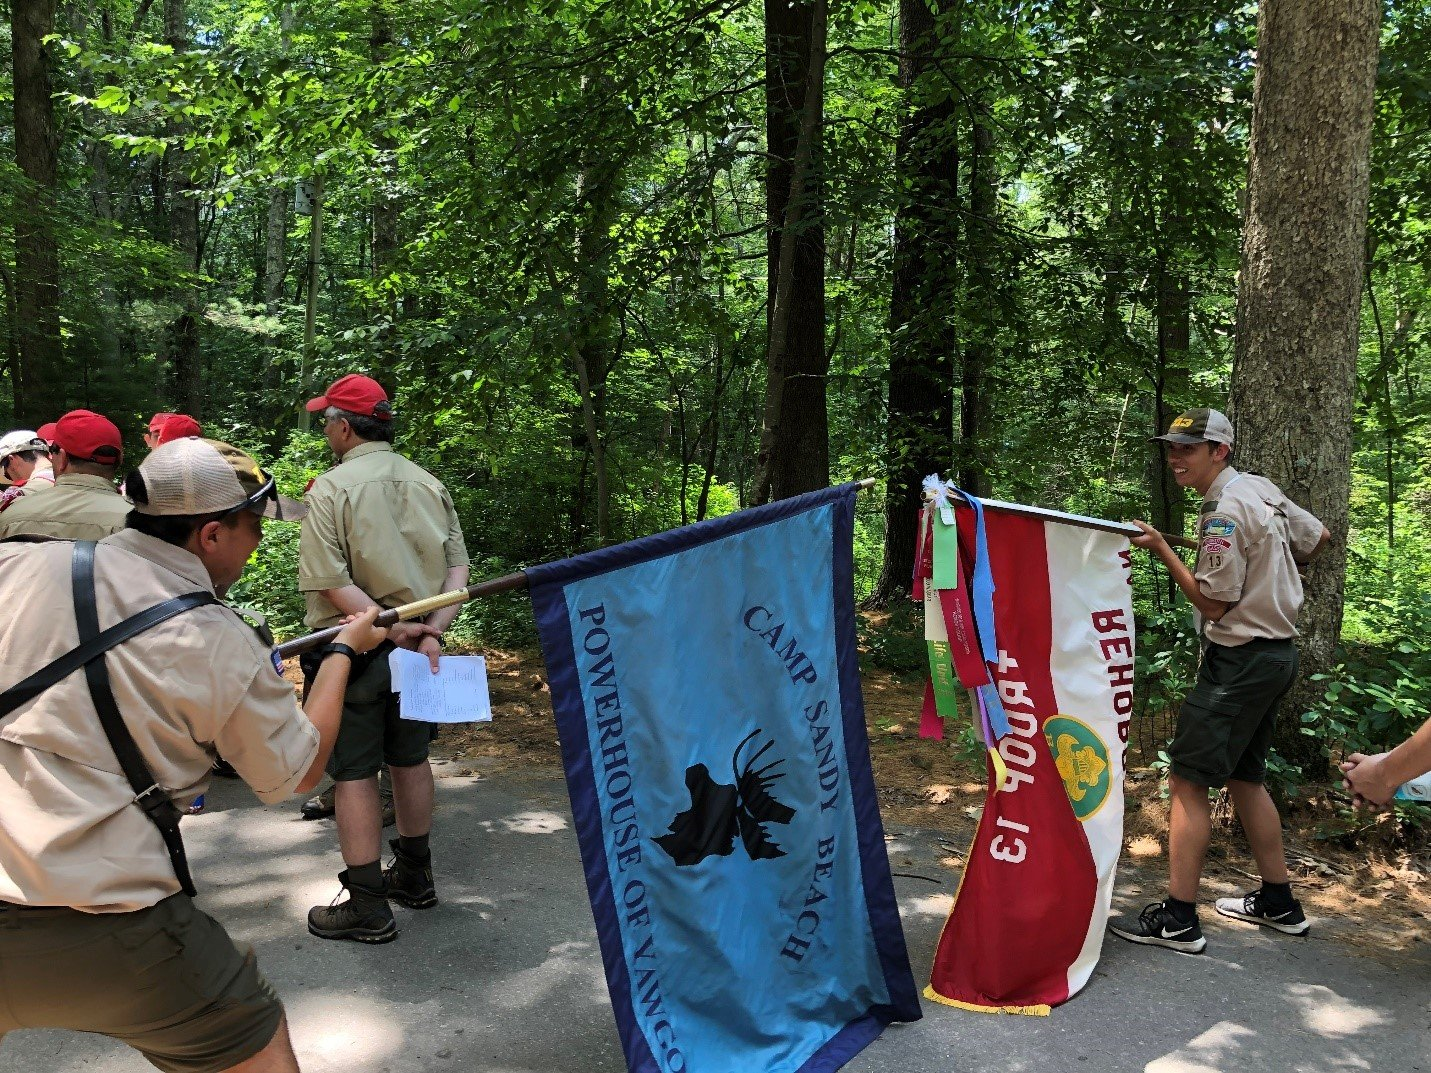 Troop 13 waiting for Camp Yawgoog's dress parade. (From L-to-R): Sam D., Matt B.